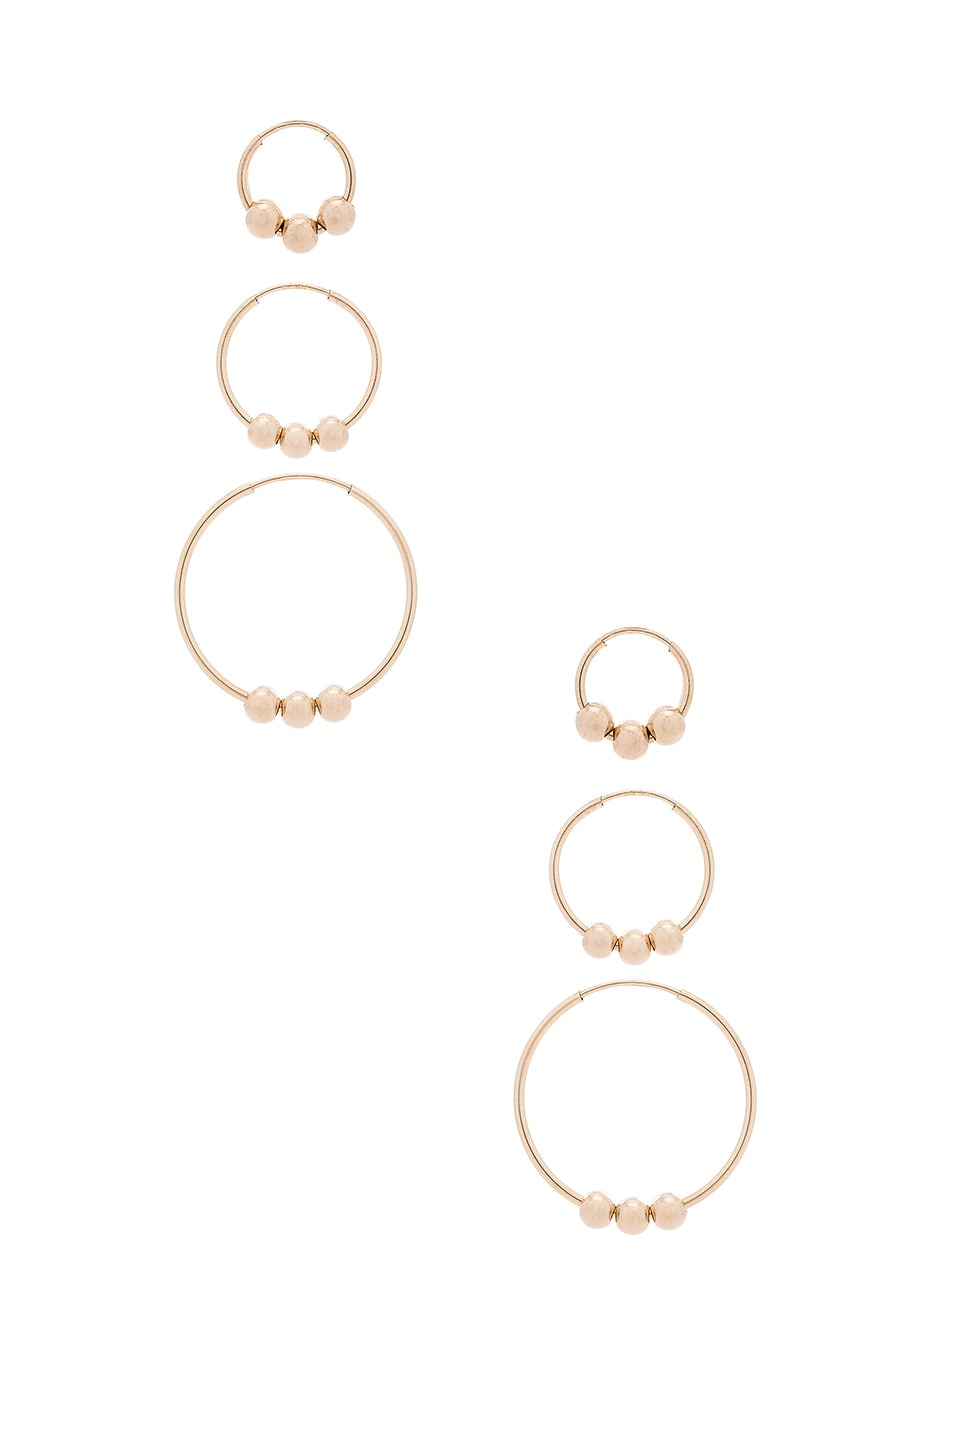 PARADIGM TRIPLE BALL EARRING SET